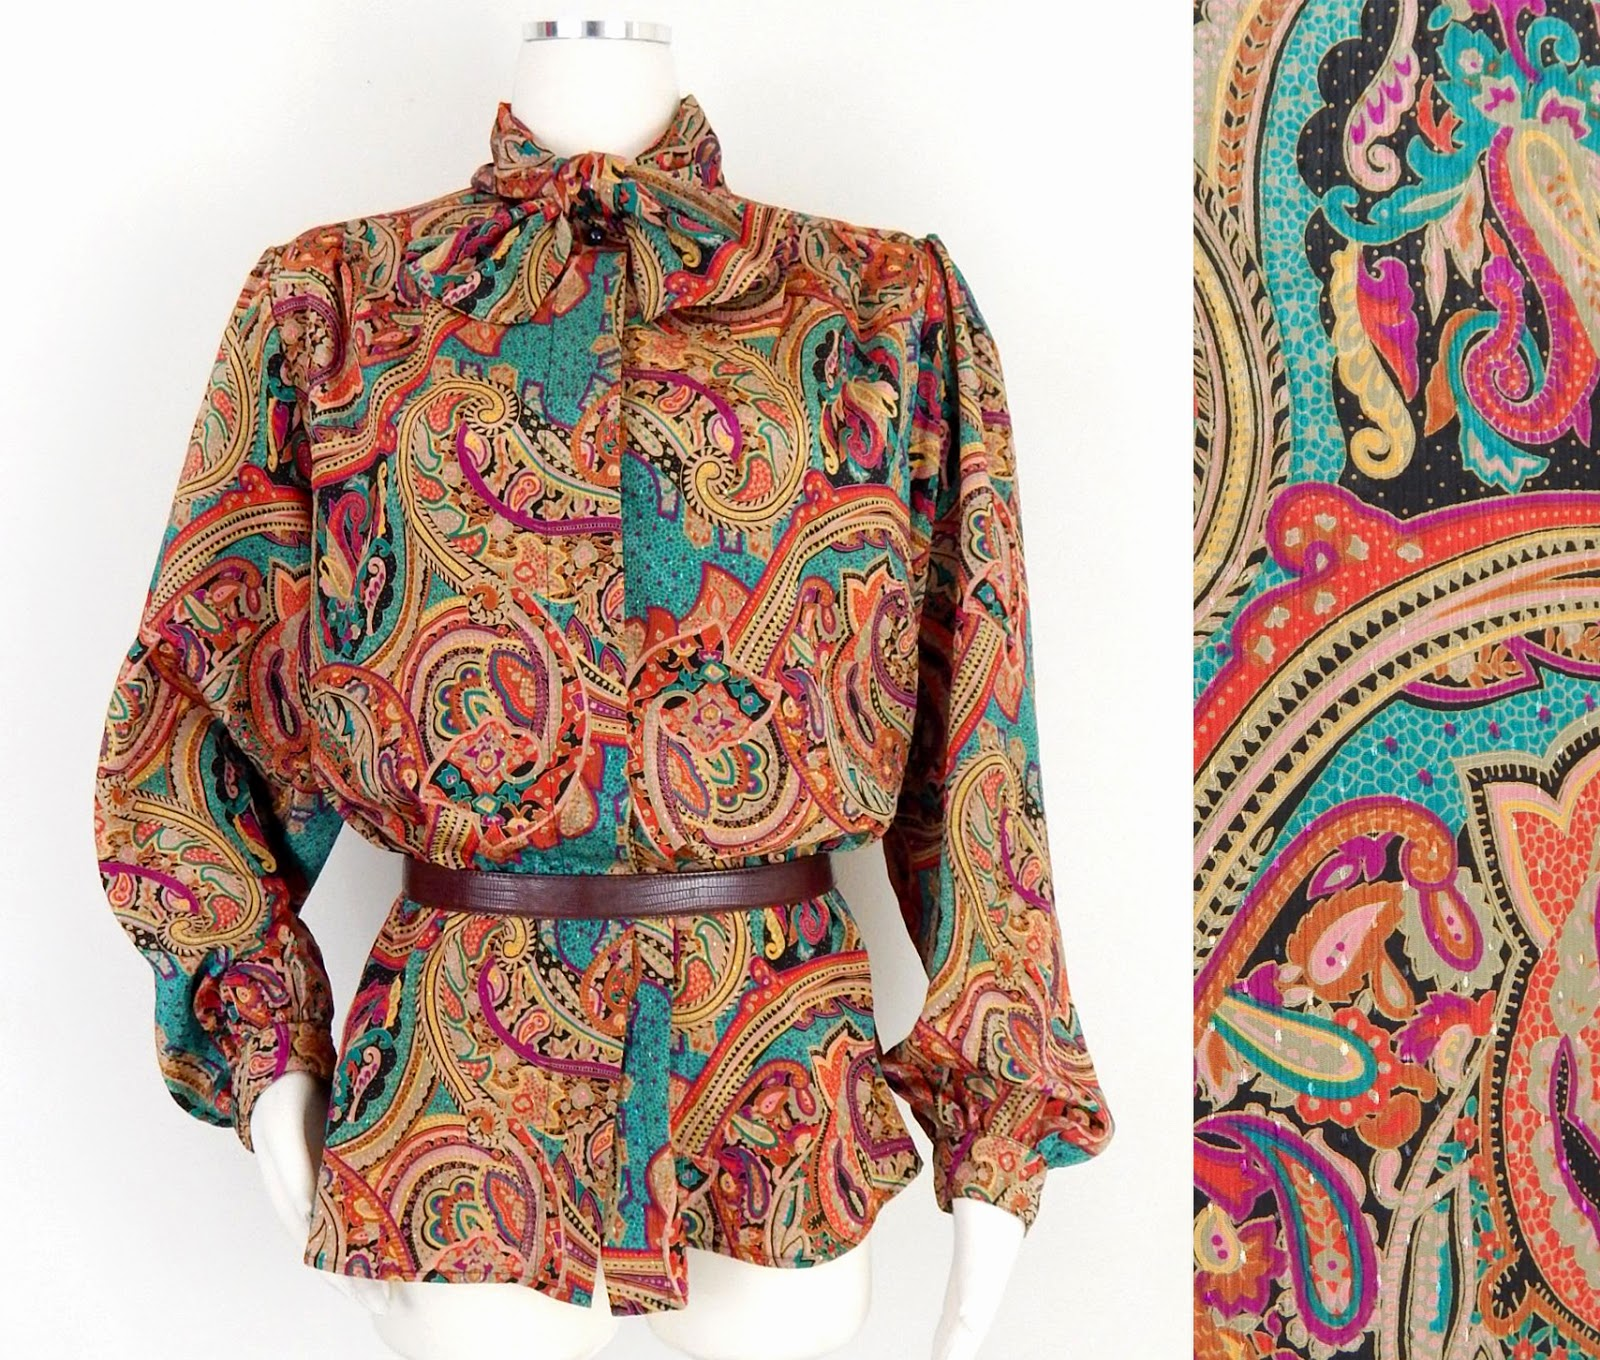 https://www.etsy.com/listing/208864180/vtg-80s-paisley-print-secretary-bow-neck?ref=shop_home_active_7